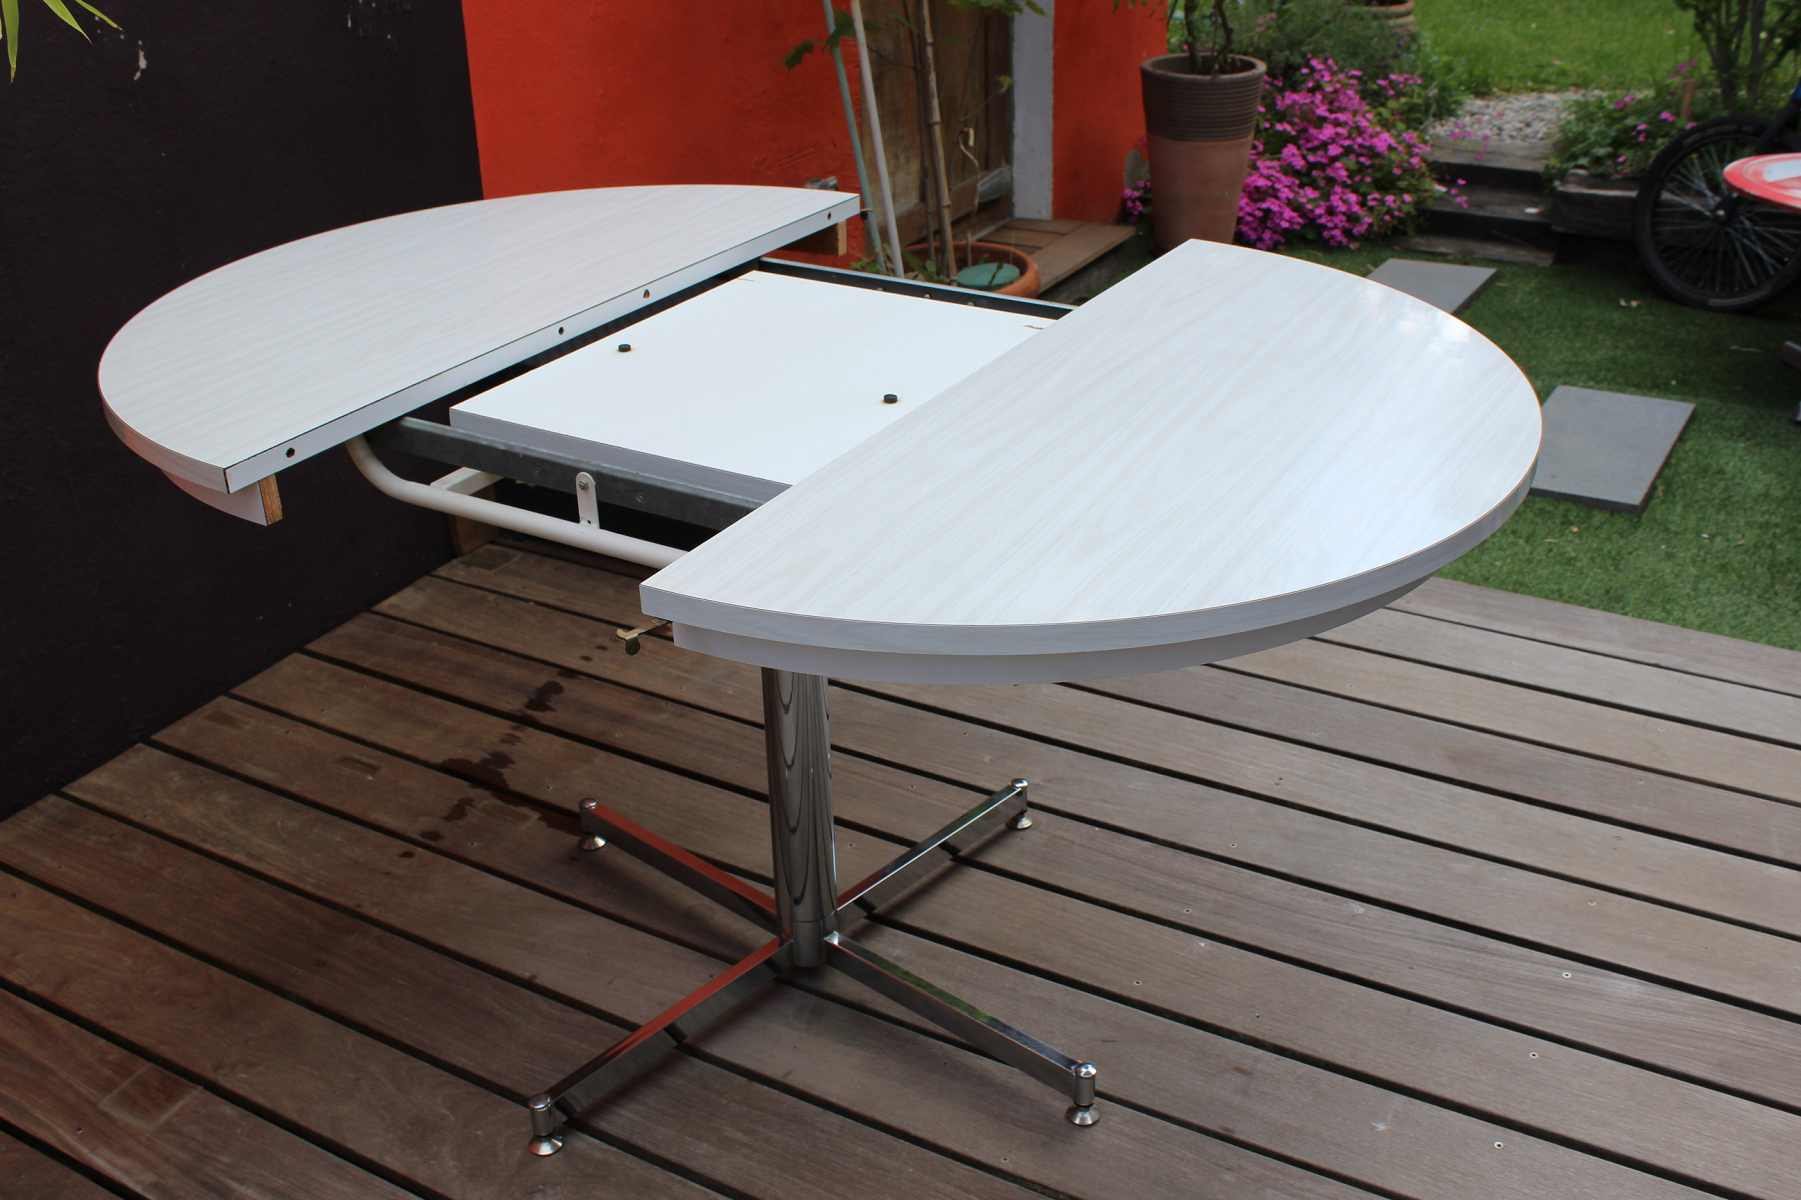 Table Exterieur Avec Rallonge Table Formica En Version Ronde Ou Ovale - Vintage By Fabichka